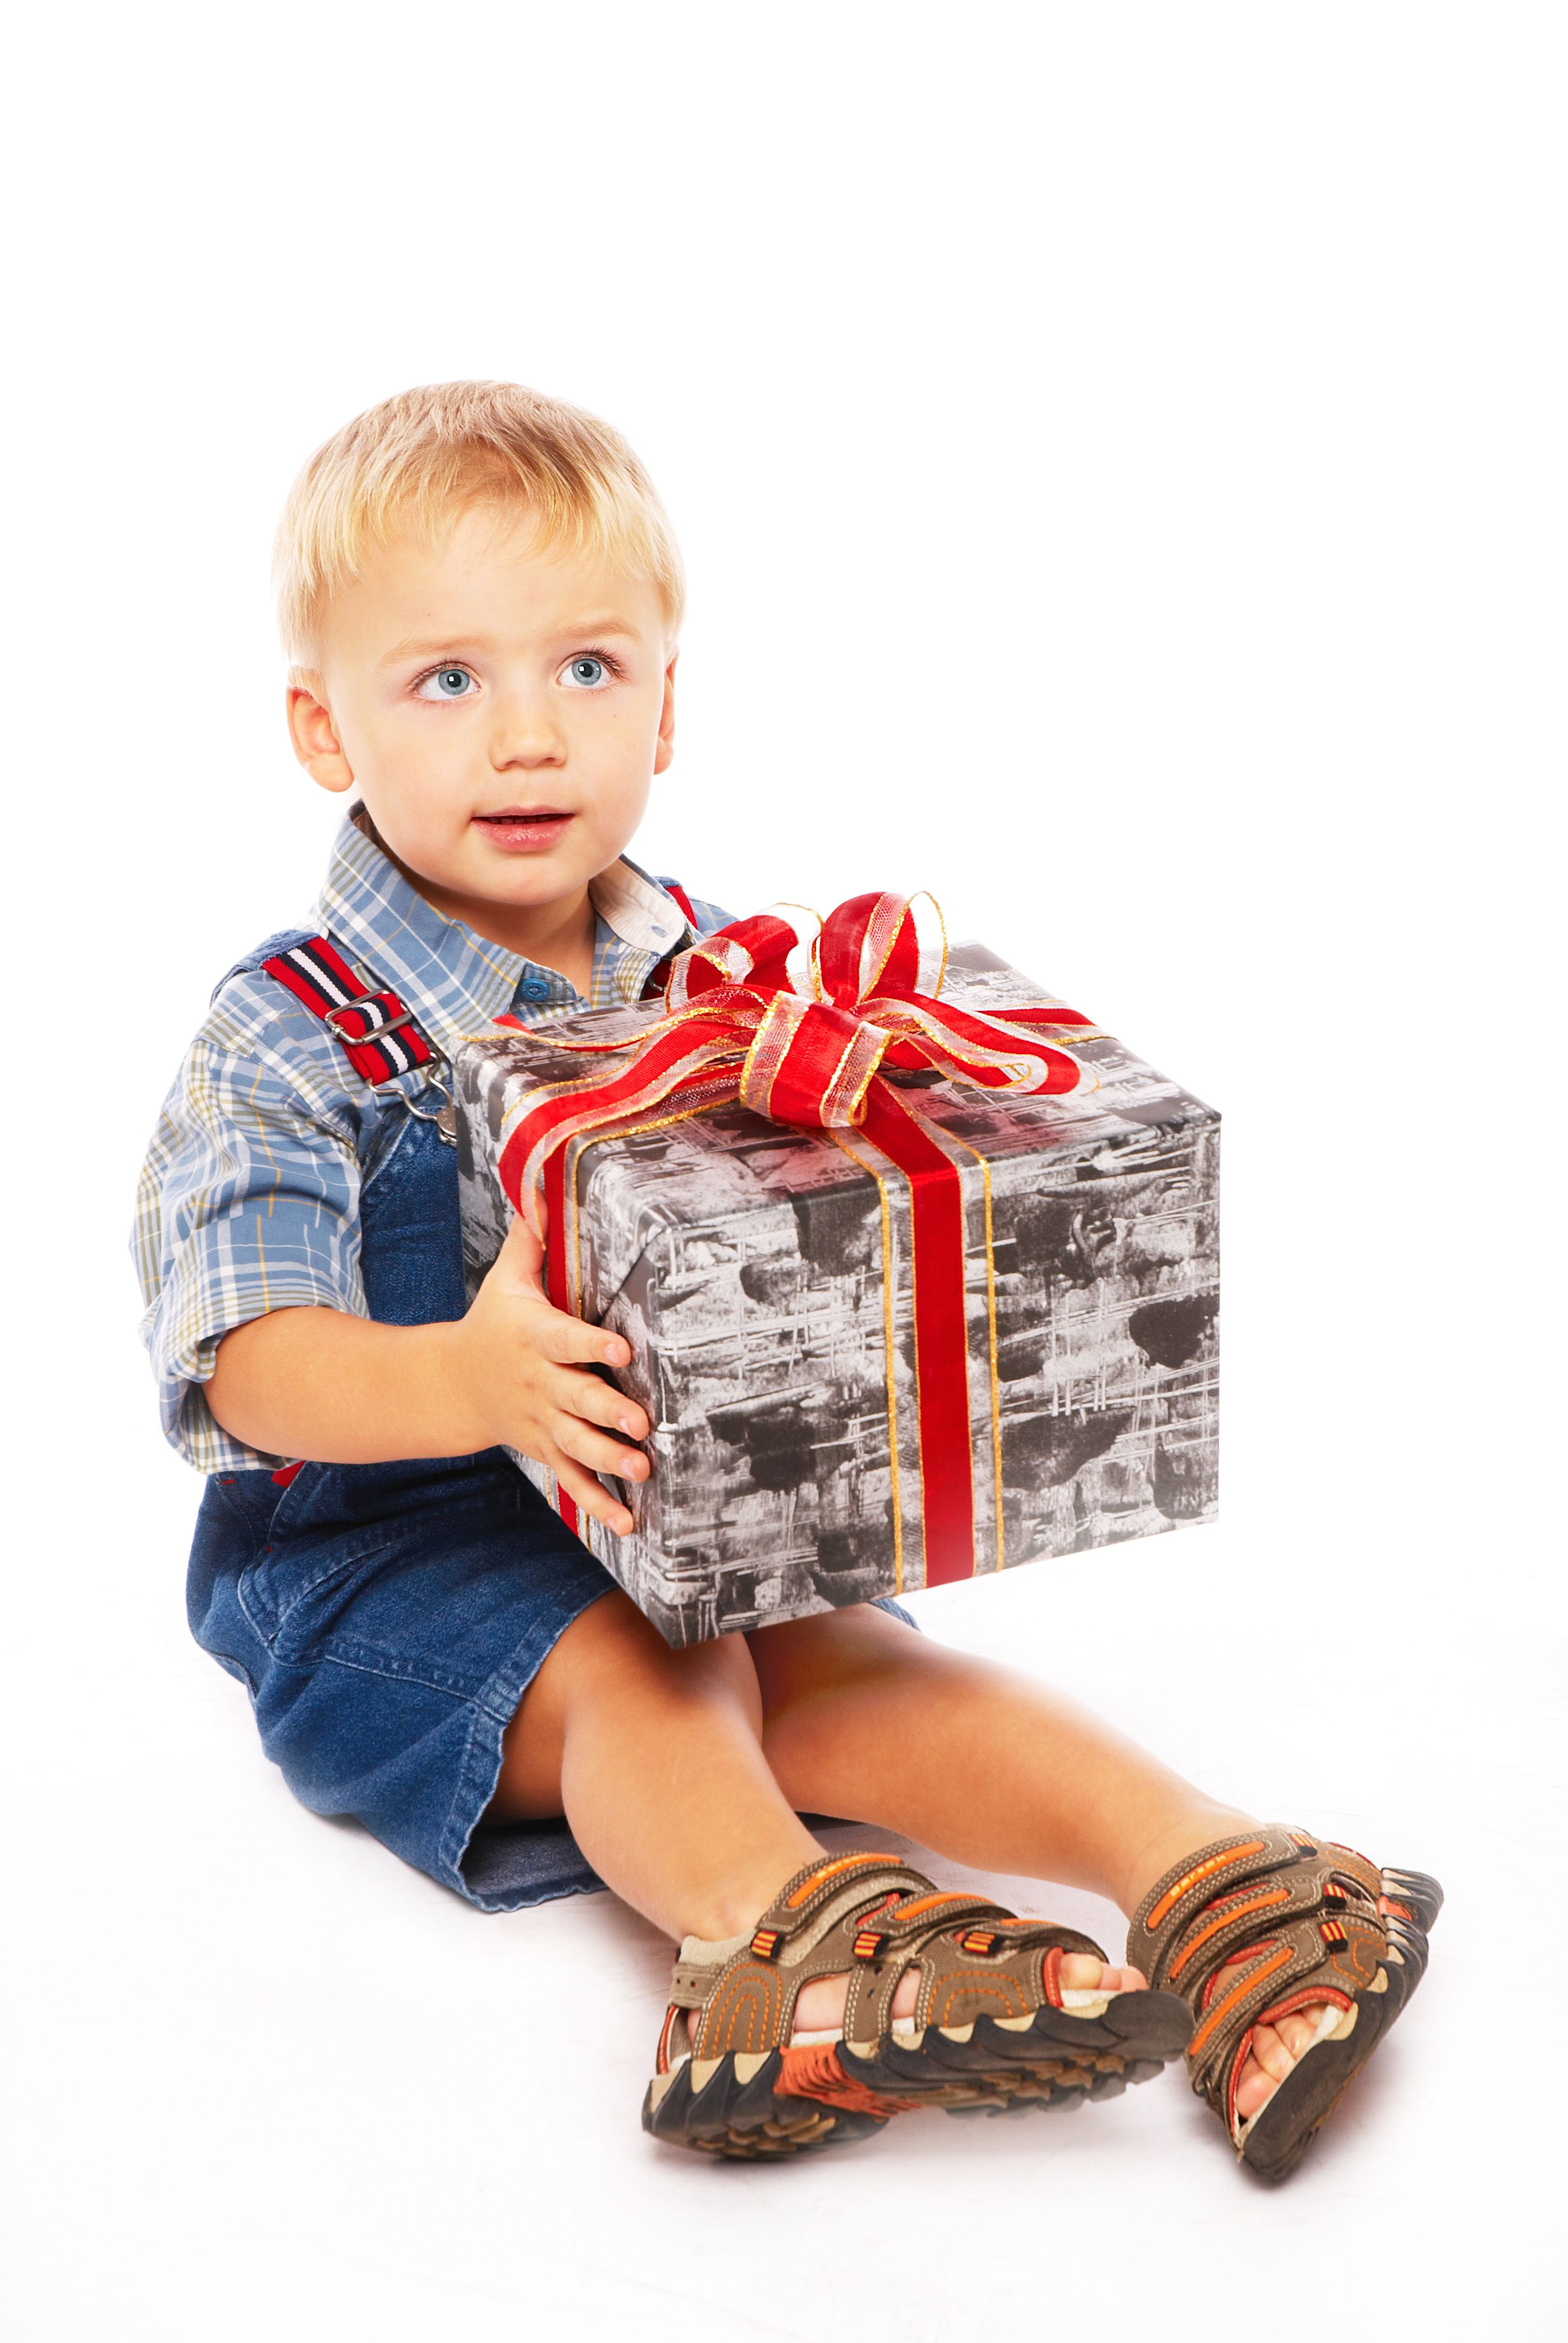 Best Birthday and Christmas Gift Ideas for a Three Year Old Boy